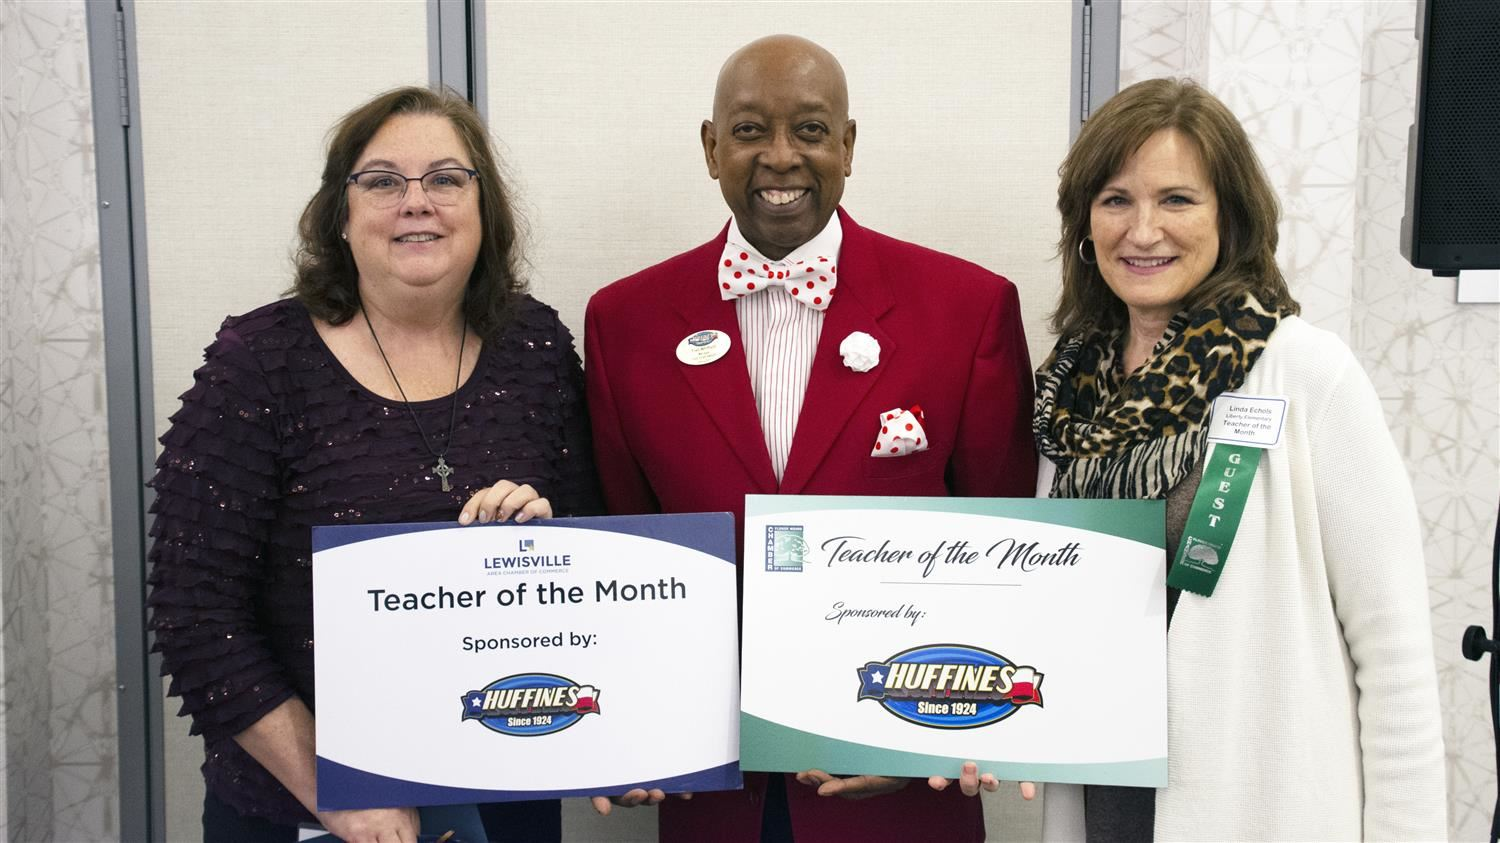 Creekside Elementary's Formichella Named Lewisville Area Chamber of Commerce/Huffines Auto Dealership November Teacher of the Month